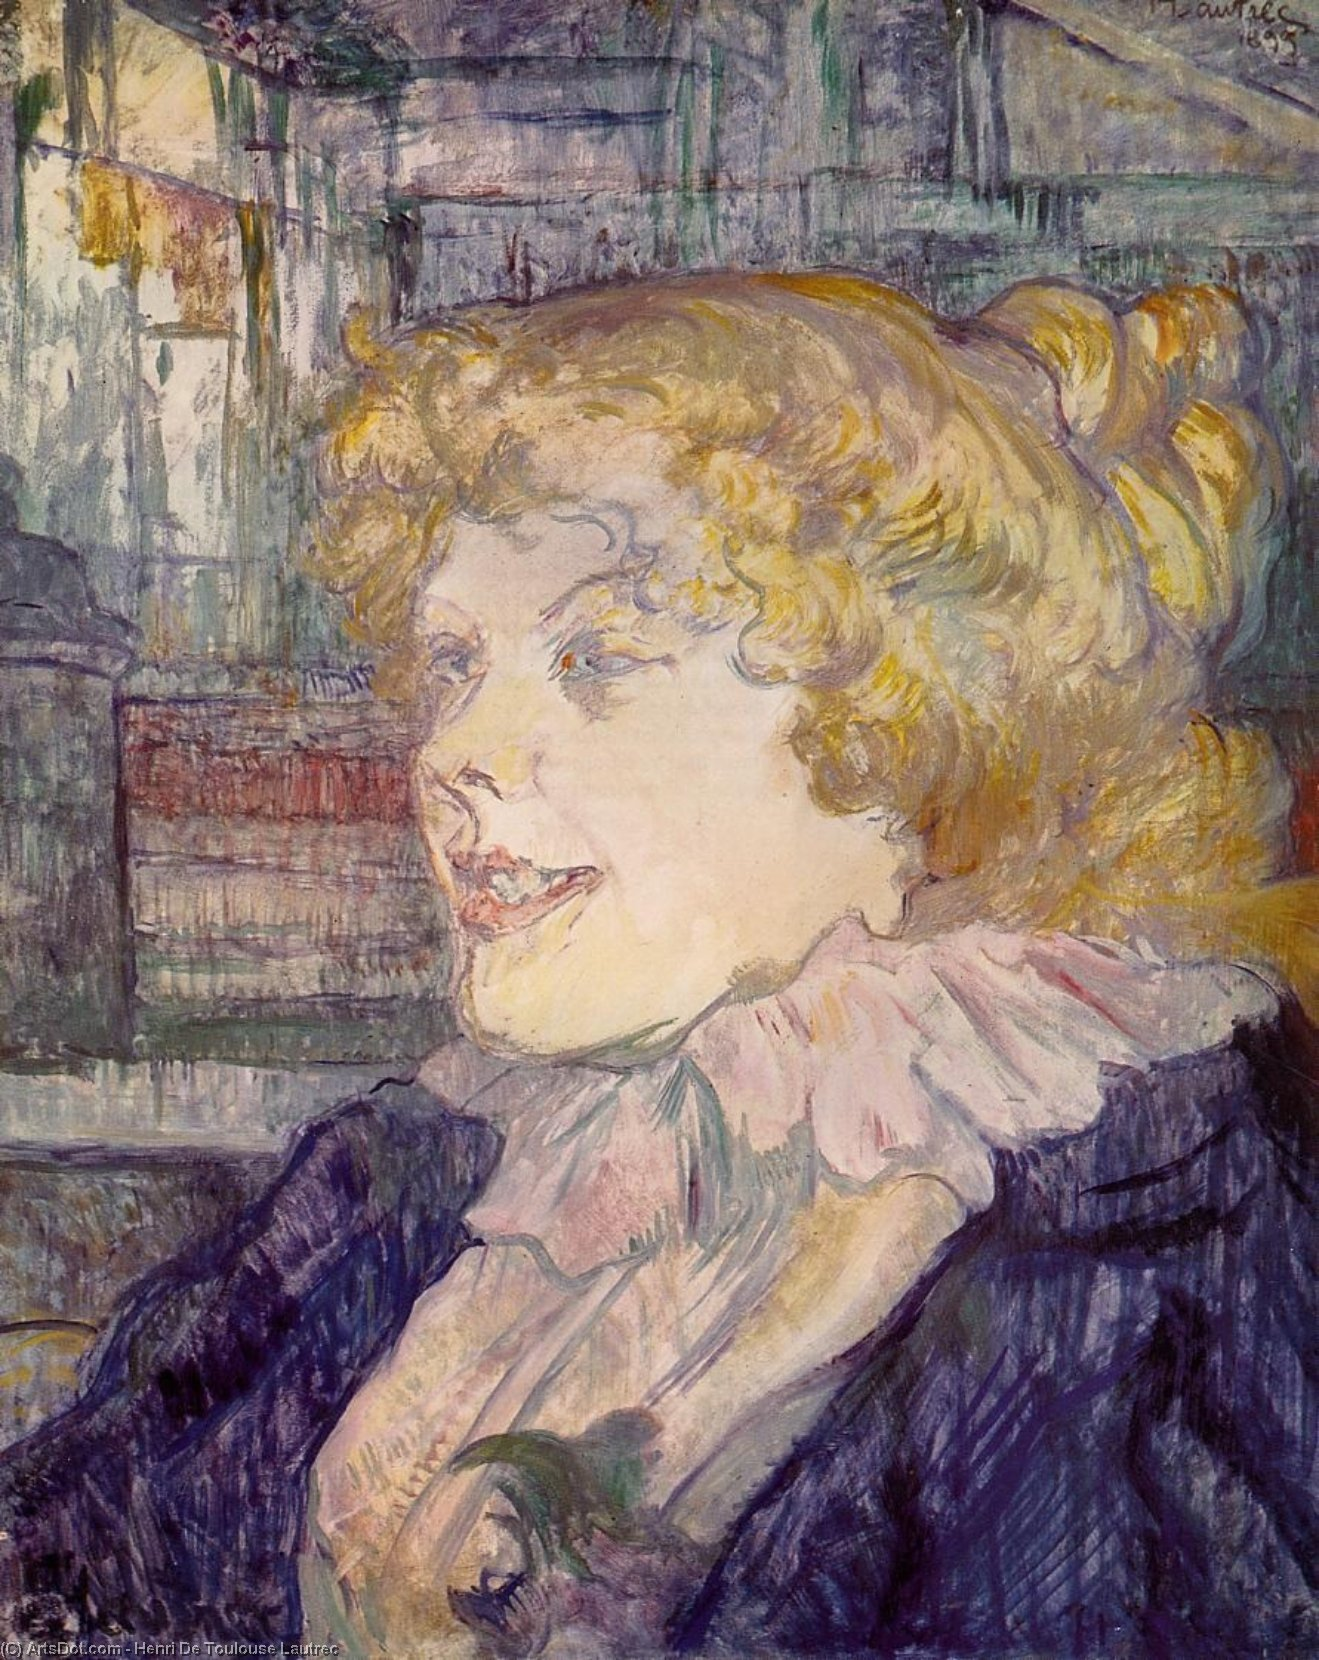 The English Girl from the 'Star', Le Havre, Oil On Panel by Henri De Toulouse Lautrec (1864-1901, France)